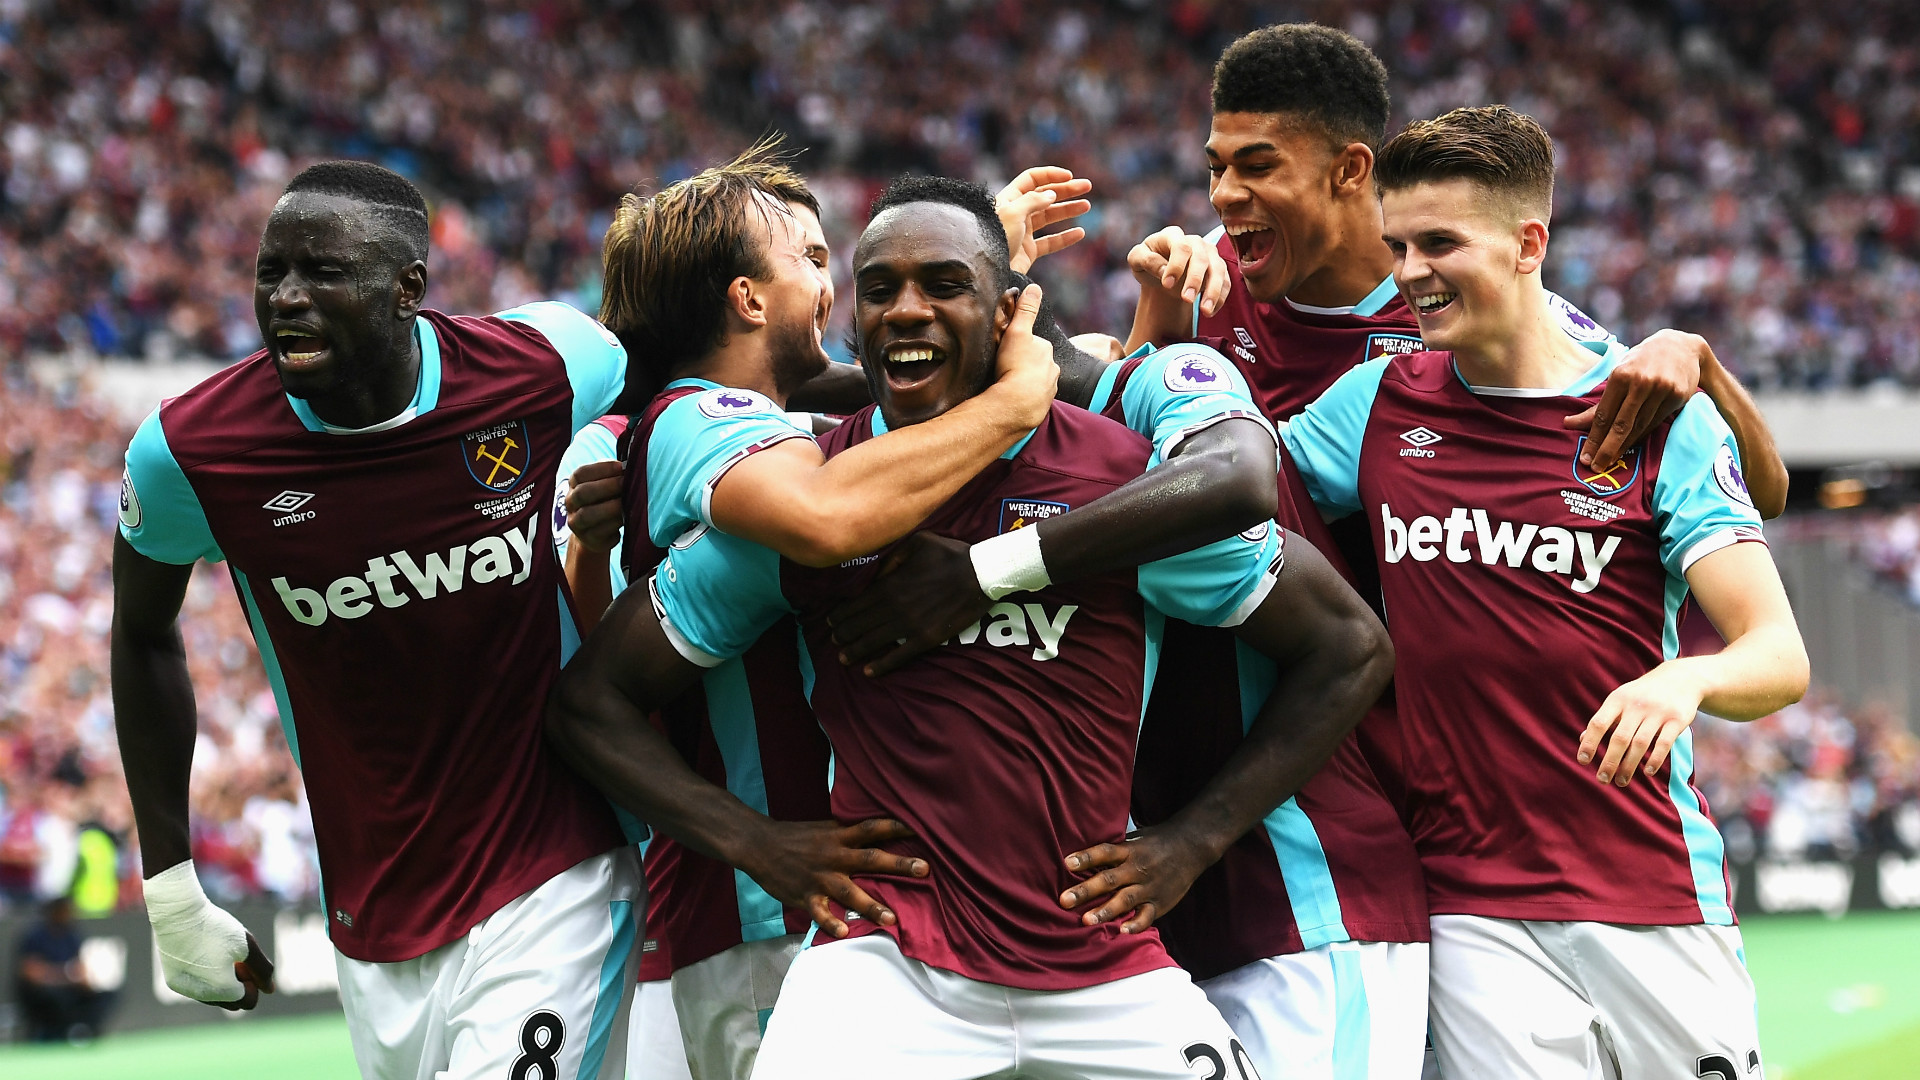 West Ham win first game at London Stadium